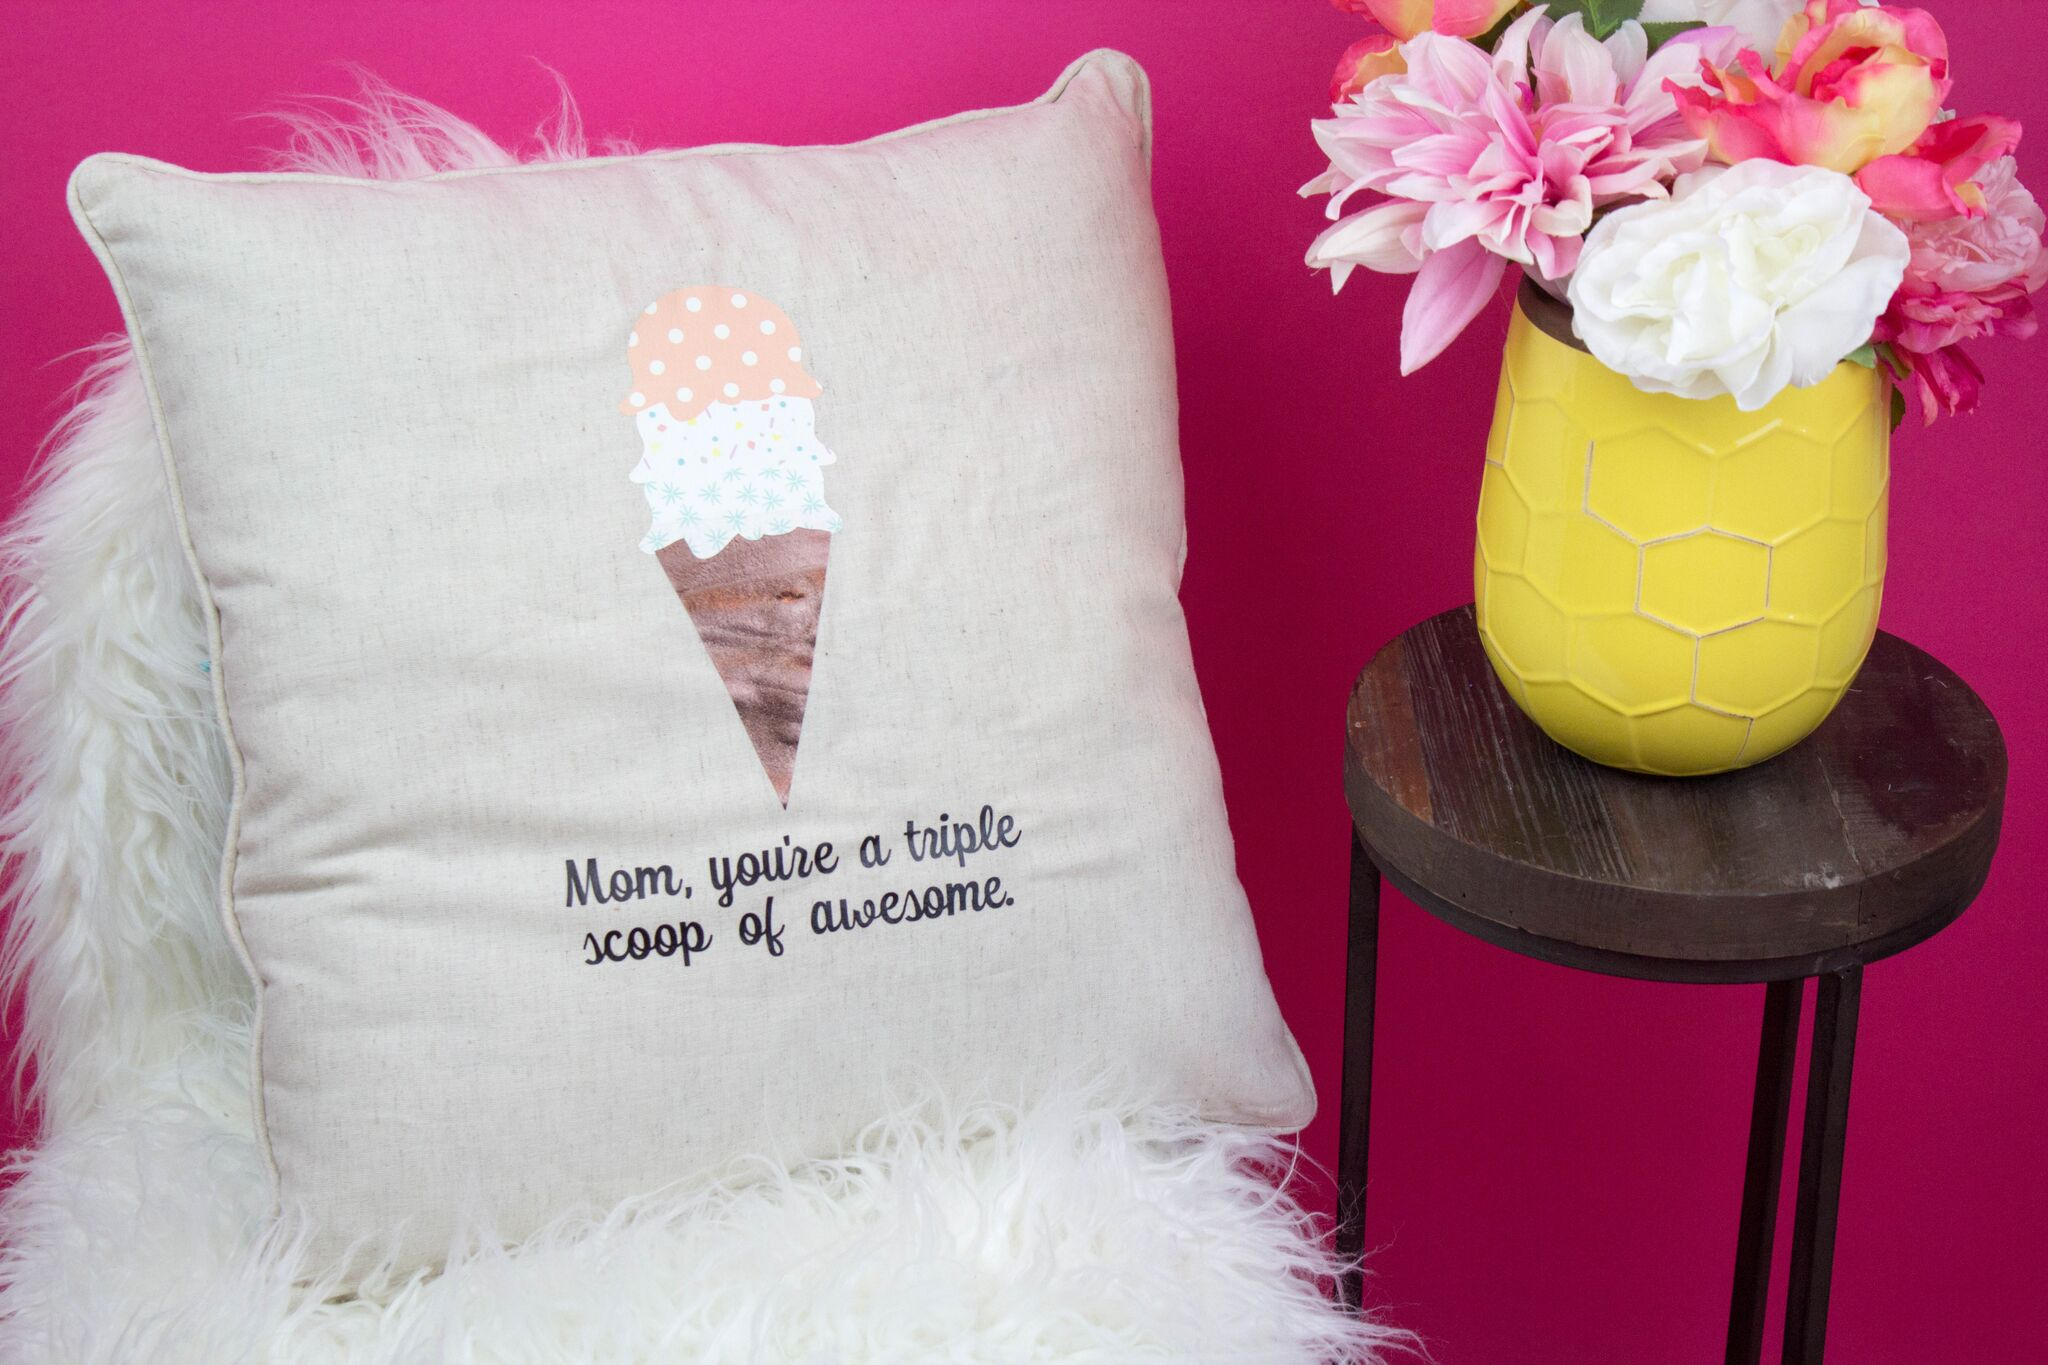 Awesome Diy Mother's Day Gifts Cricut Diy Mother S Day Gift Idea A Little Craft In Your Day